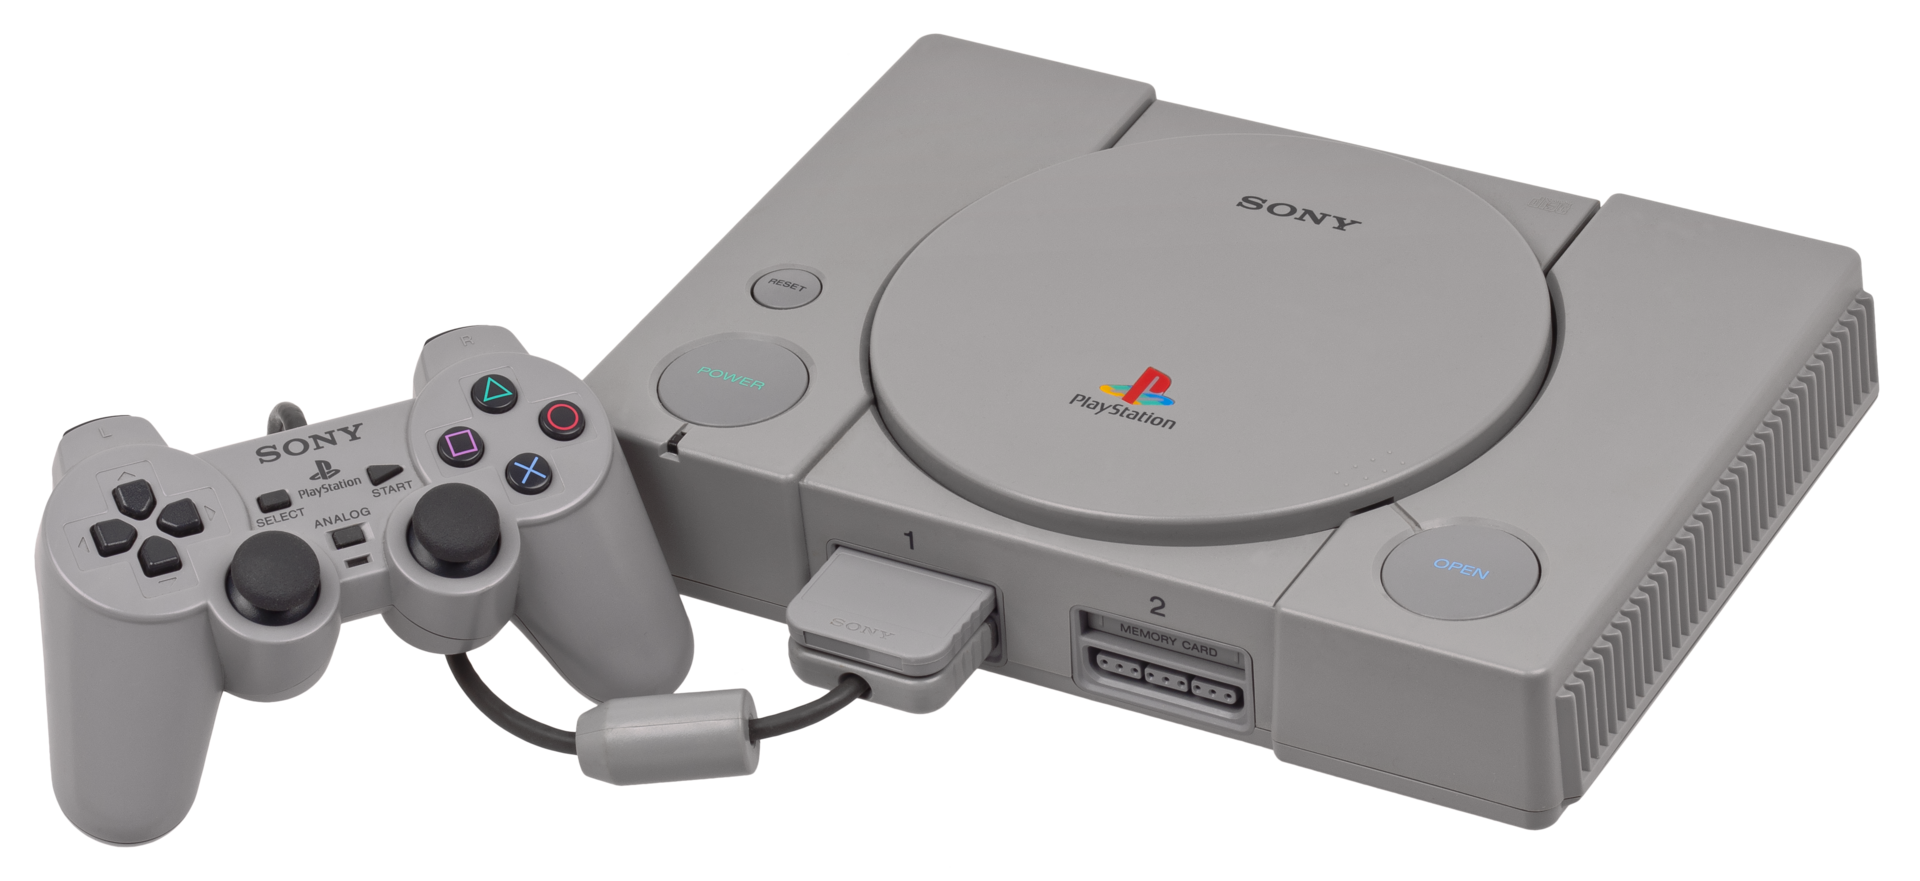 https://upload.wikimedia.org/wikipedia/commons/thumb/9/95/PSX-Console-wController.png/1920px-PSX-Console-wController.png